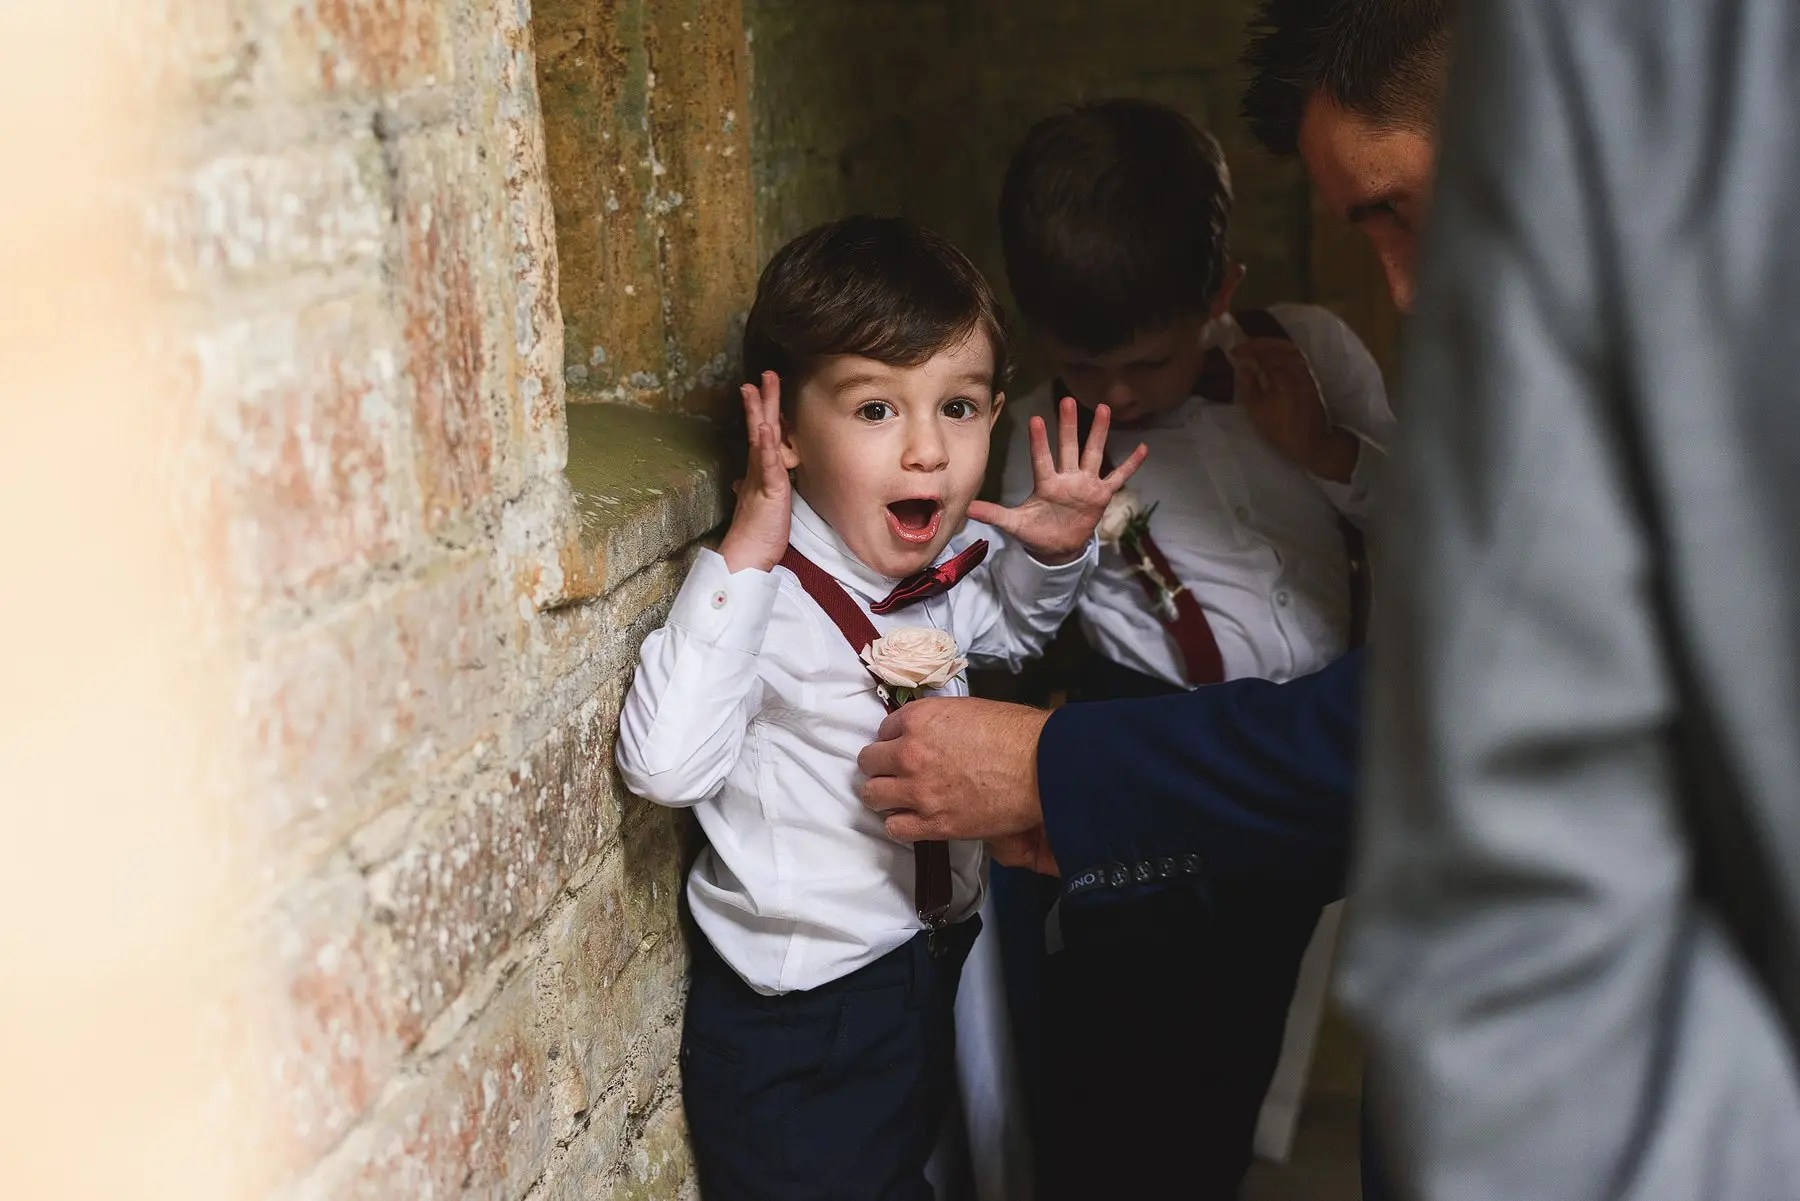 muchelney church wedding photographer